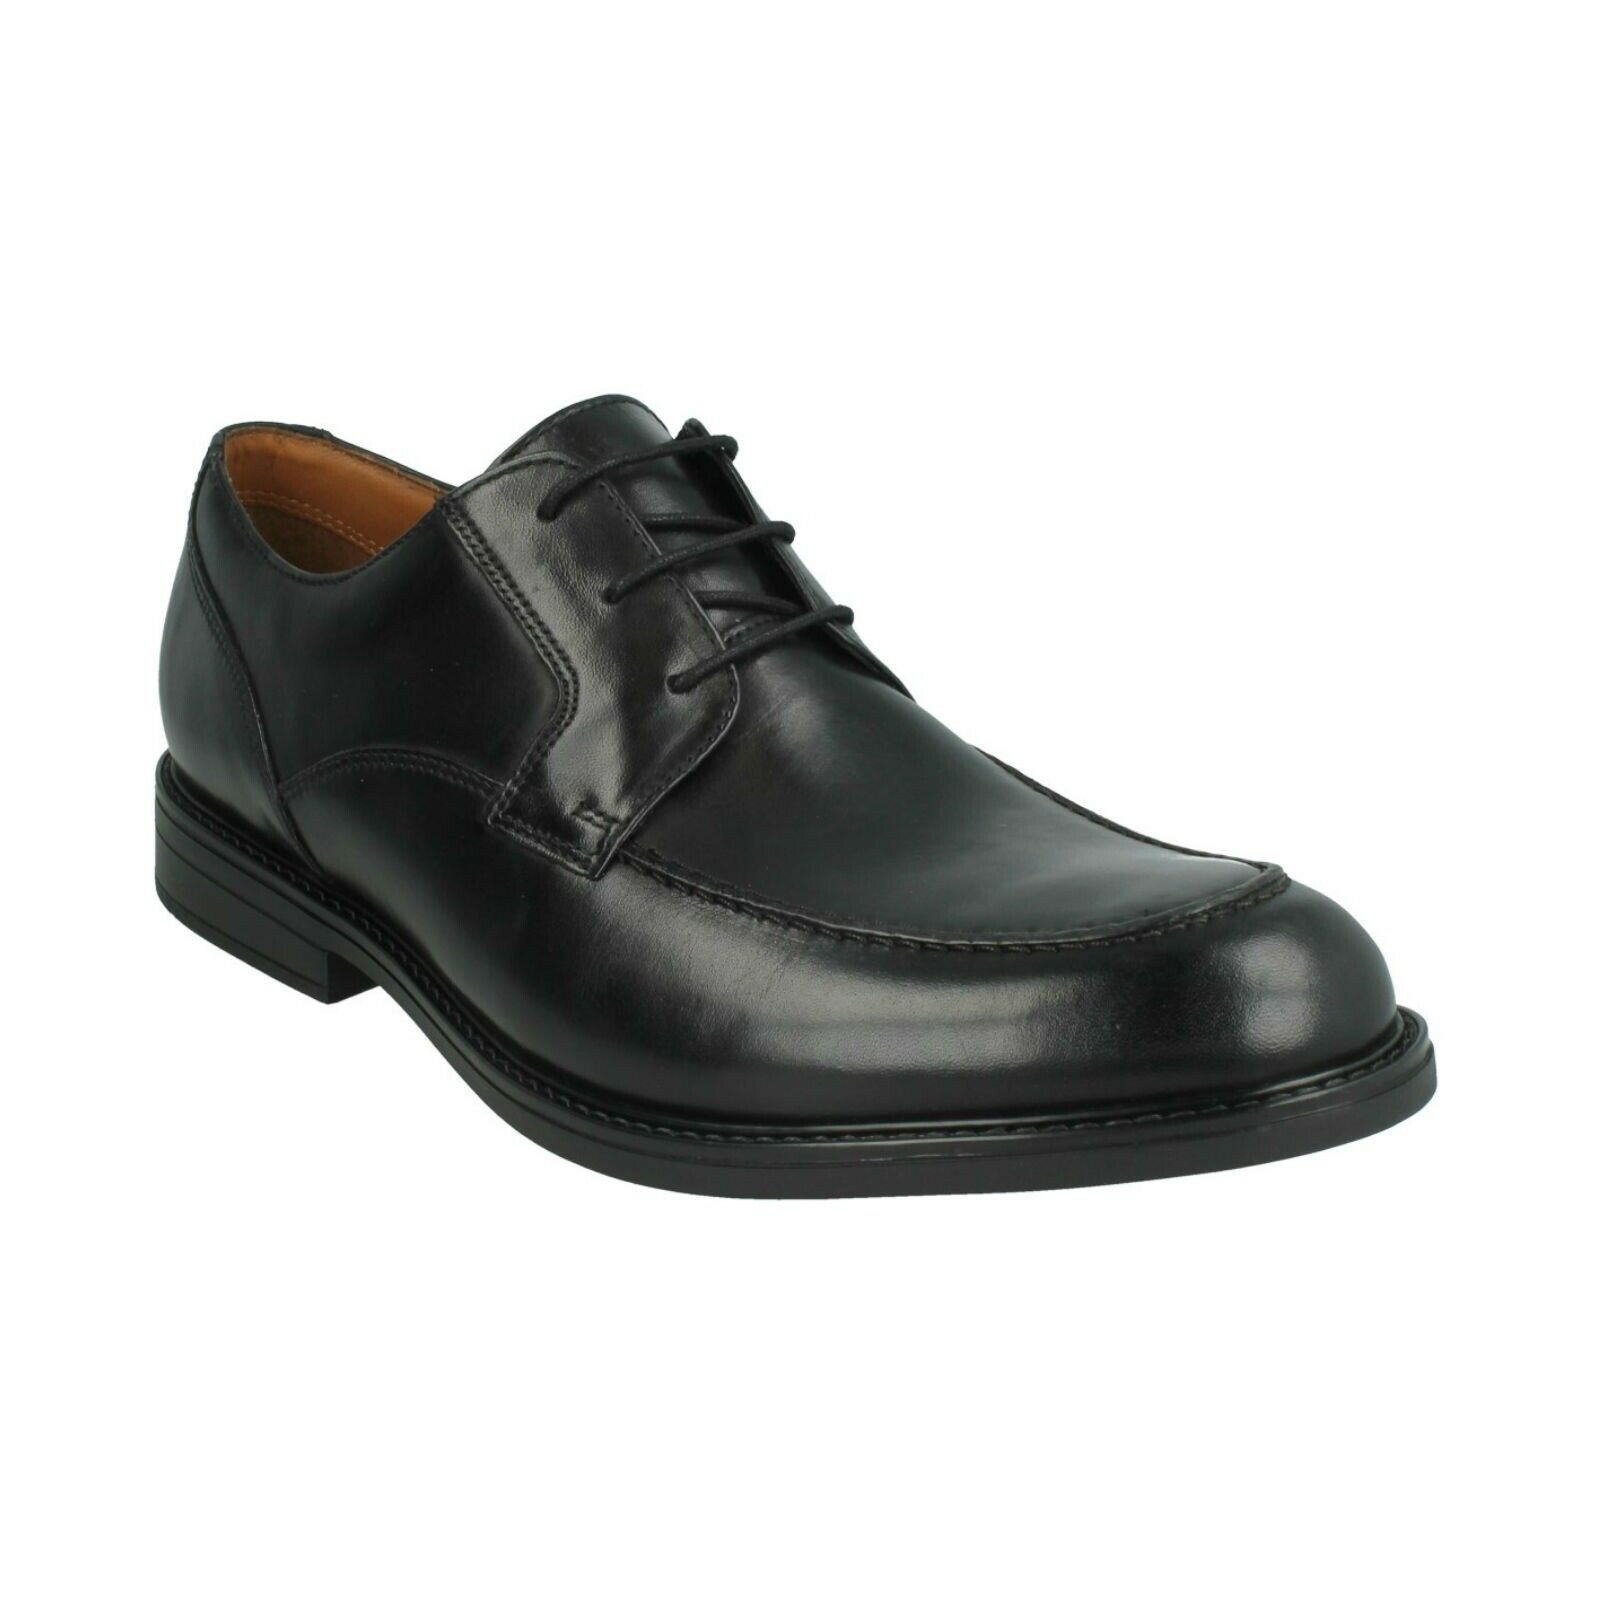 BECKFIELD APRON MENS CLARKS LACE LACE LACE UP CUSHION SOFT WORK FORMAL DRESS LEATHER schuhe bbfb63